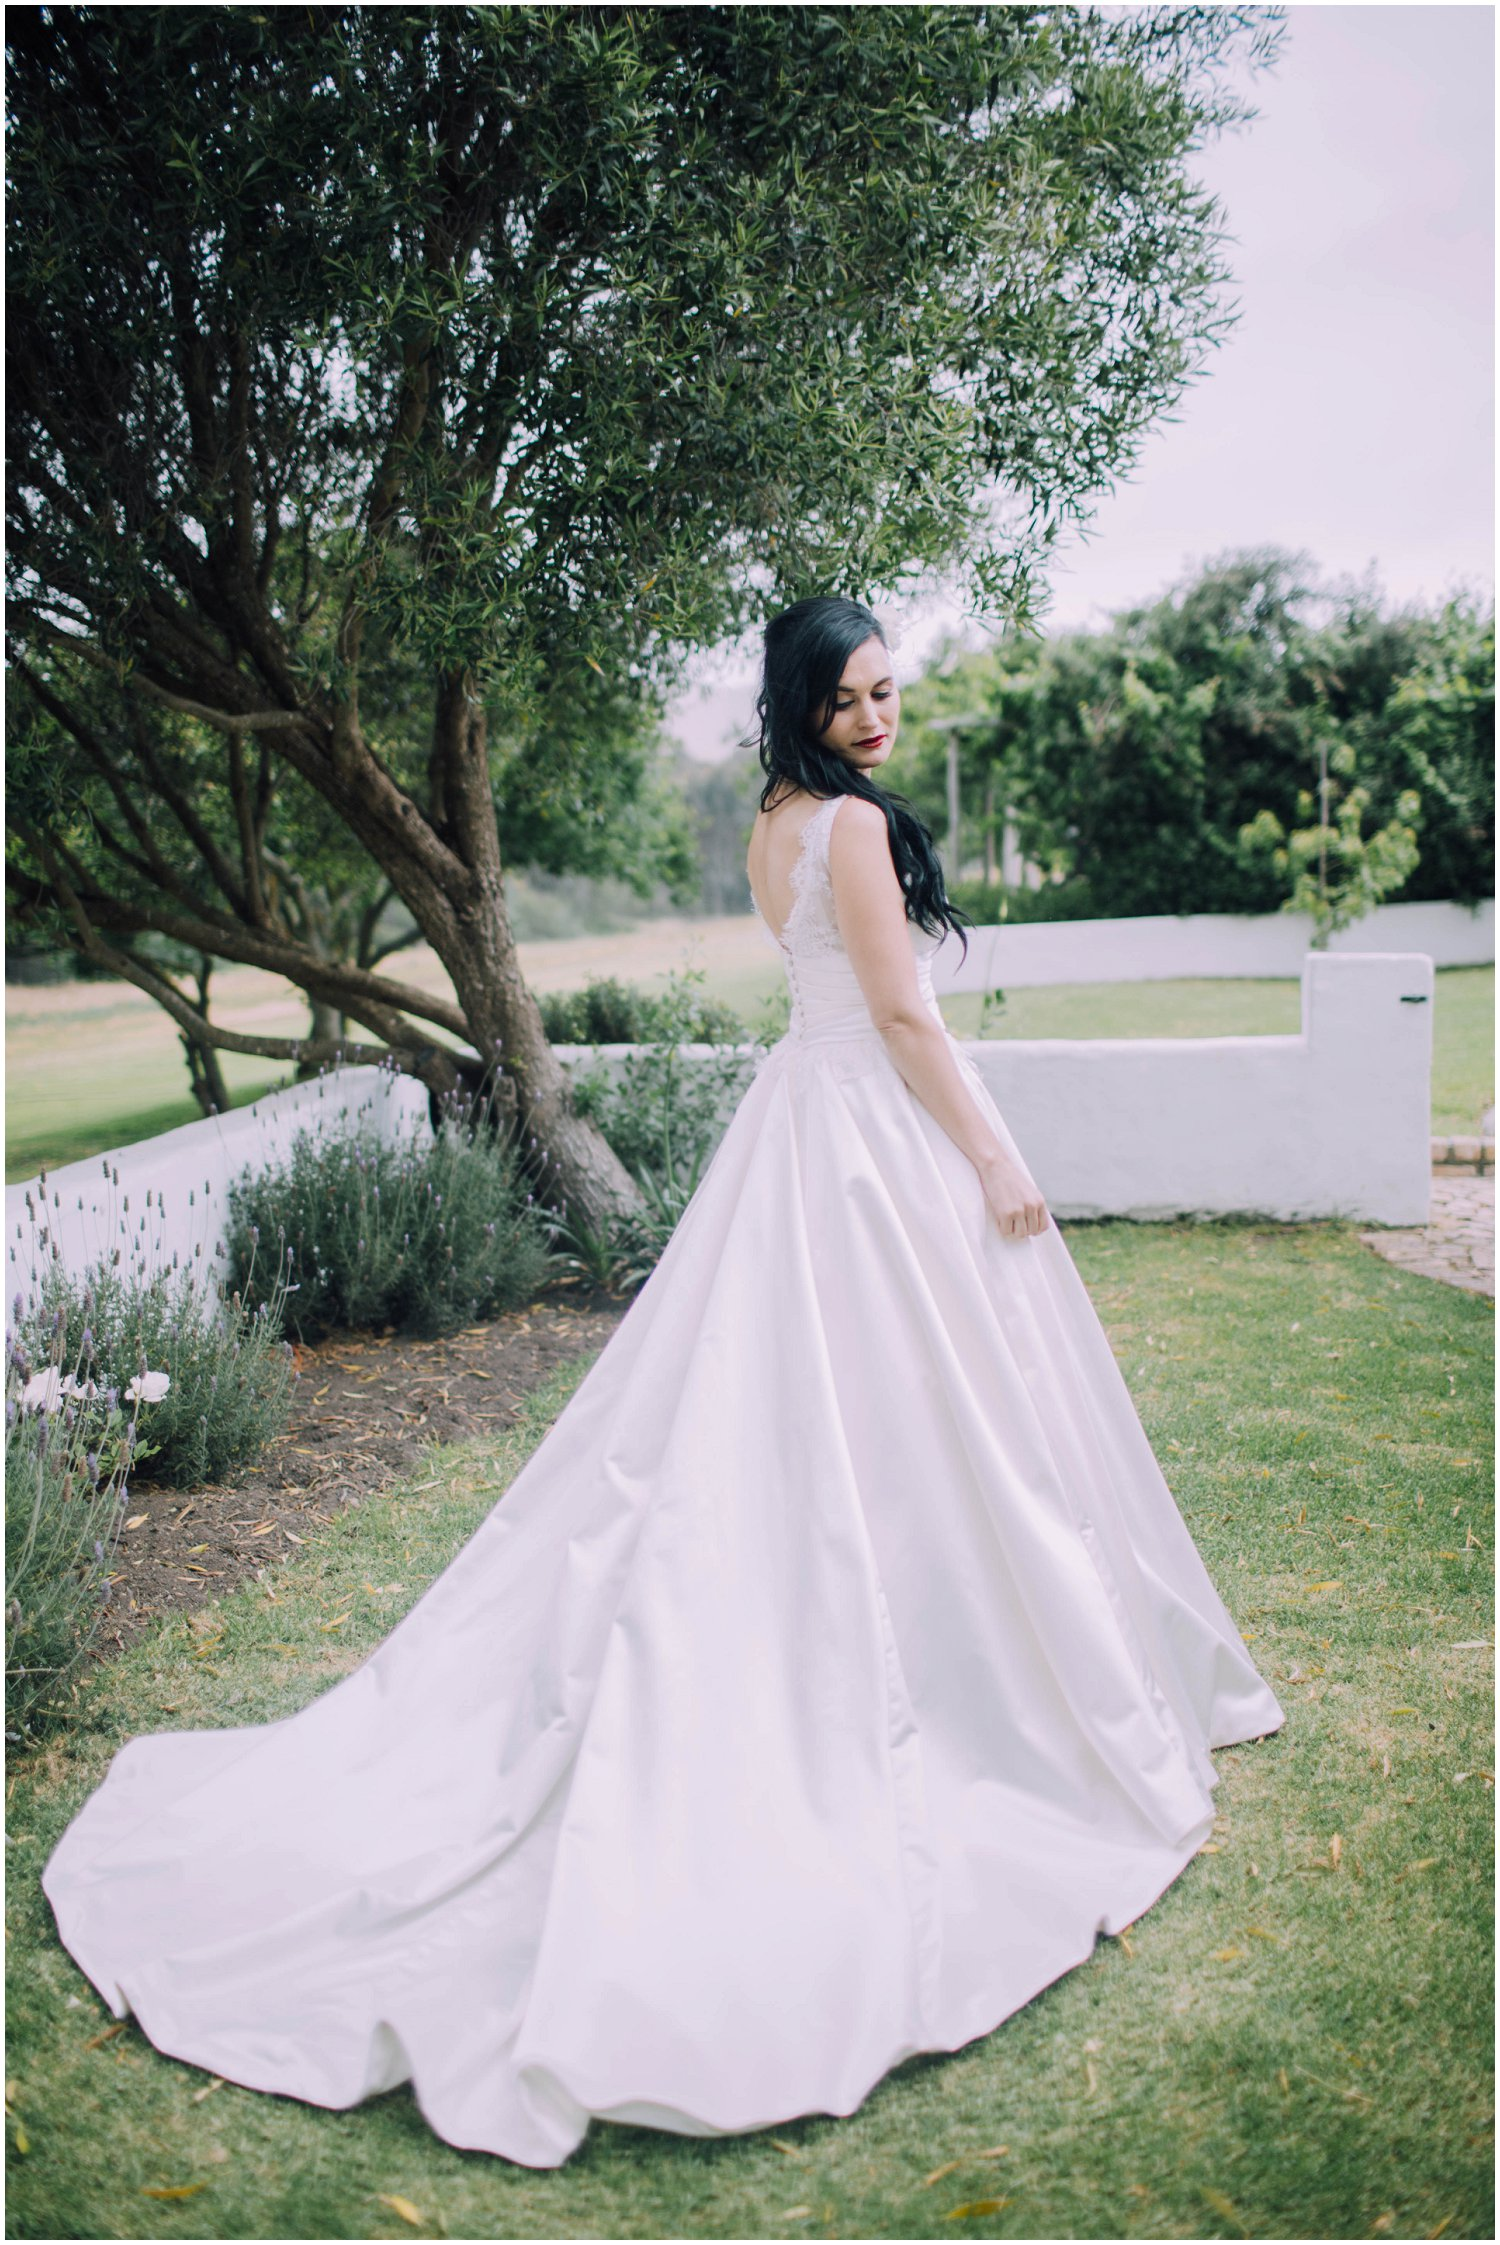 Top Wedding Photographer Cape Town South Africa Artistic Creative Documentary Wedding Photography Rue Kruger_0832.jpg